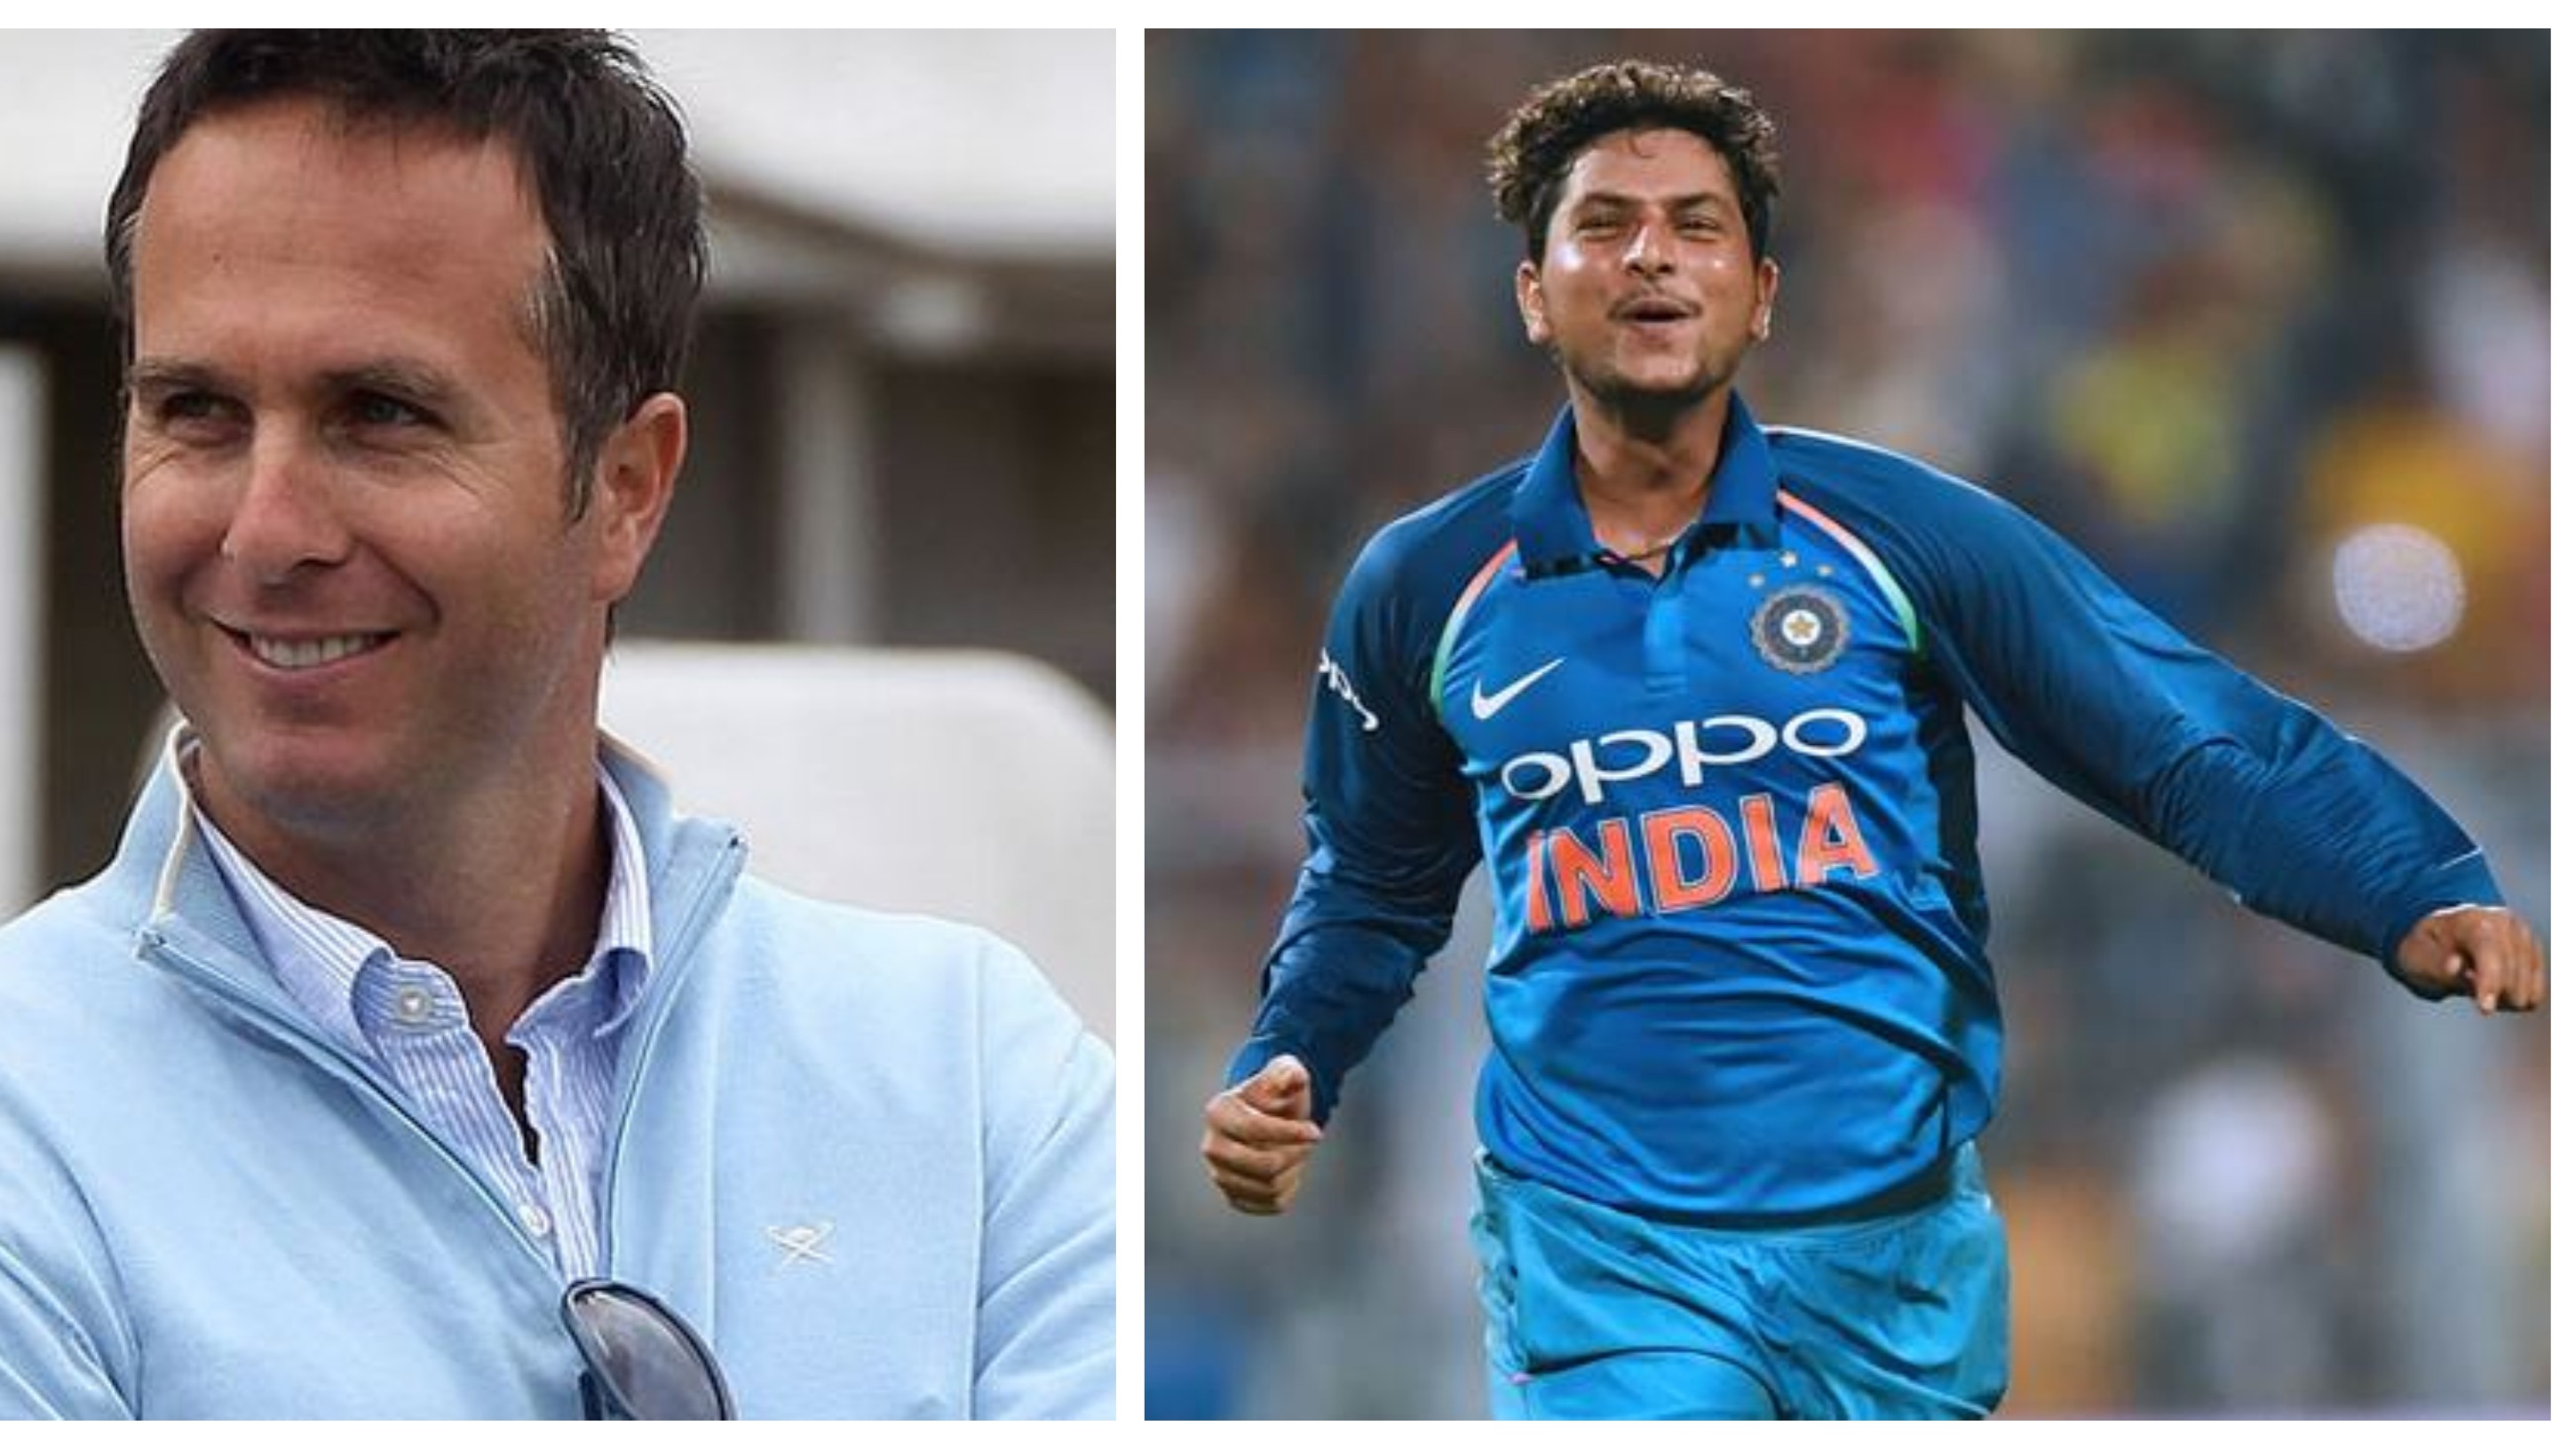 ENG v IND 2018: Kuldeep Yadav is going to bamboozle batsmen around the world for many years, says Michael Vaughan